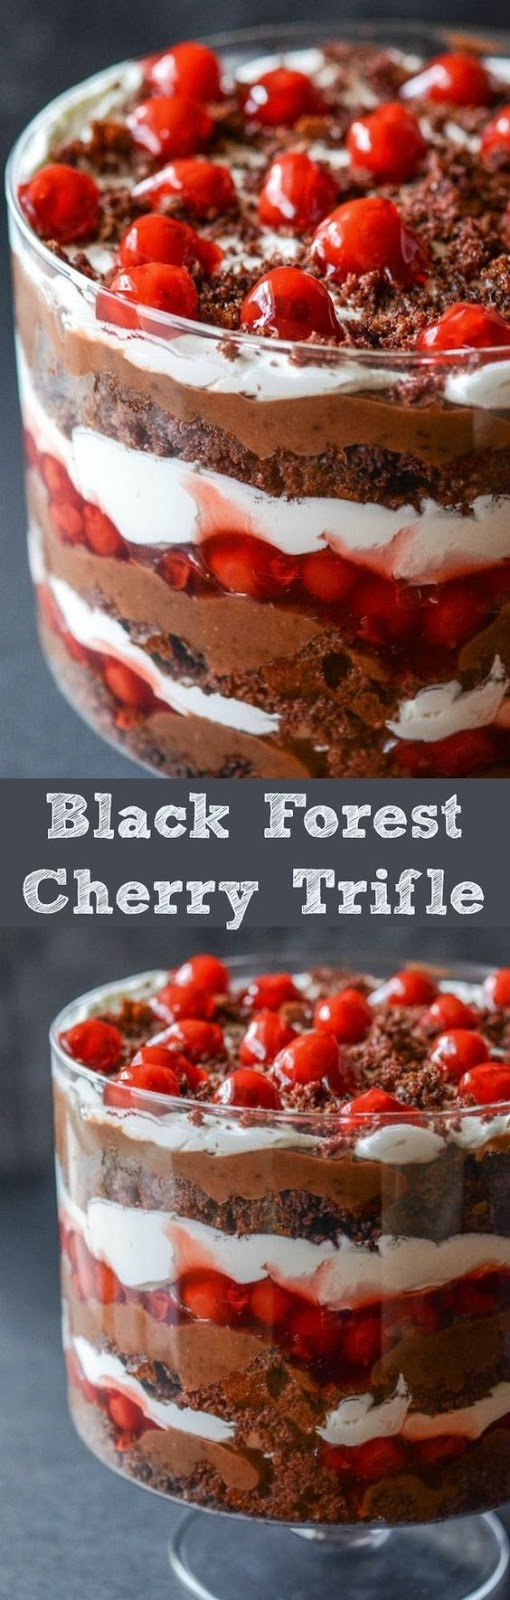 Black Forest Cherry Trifle